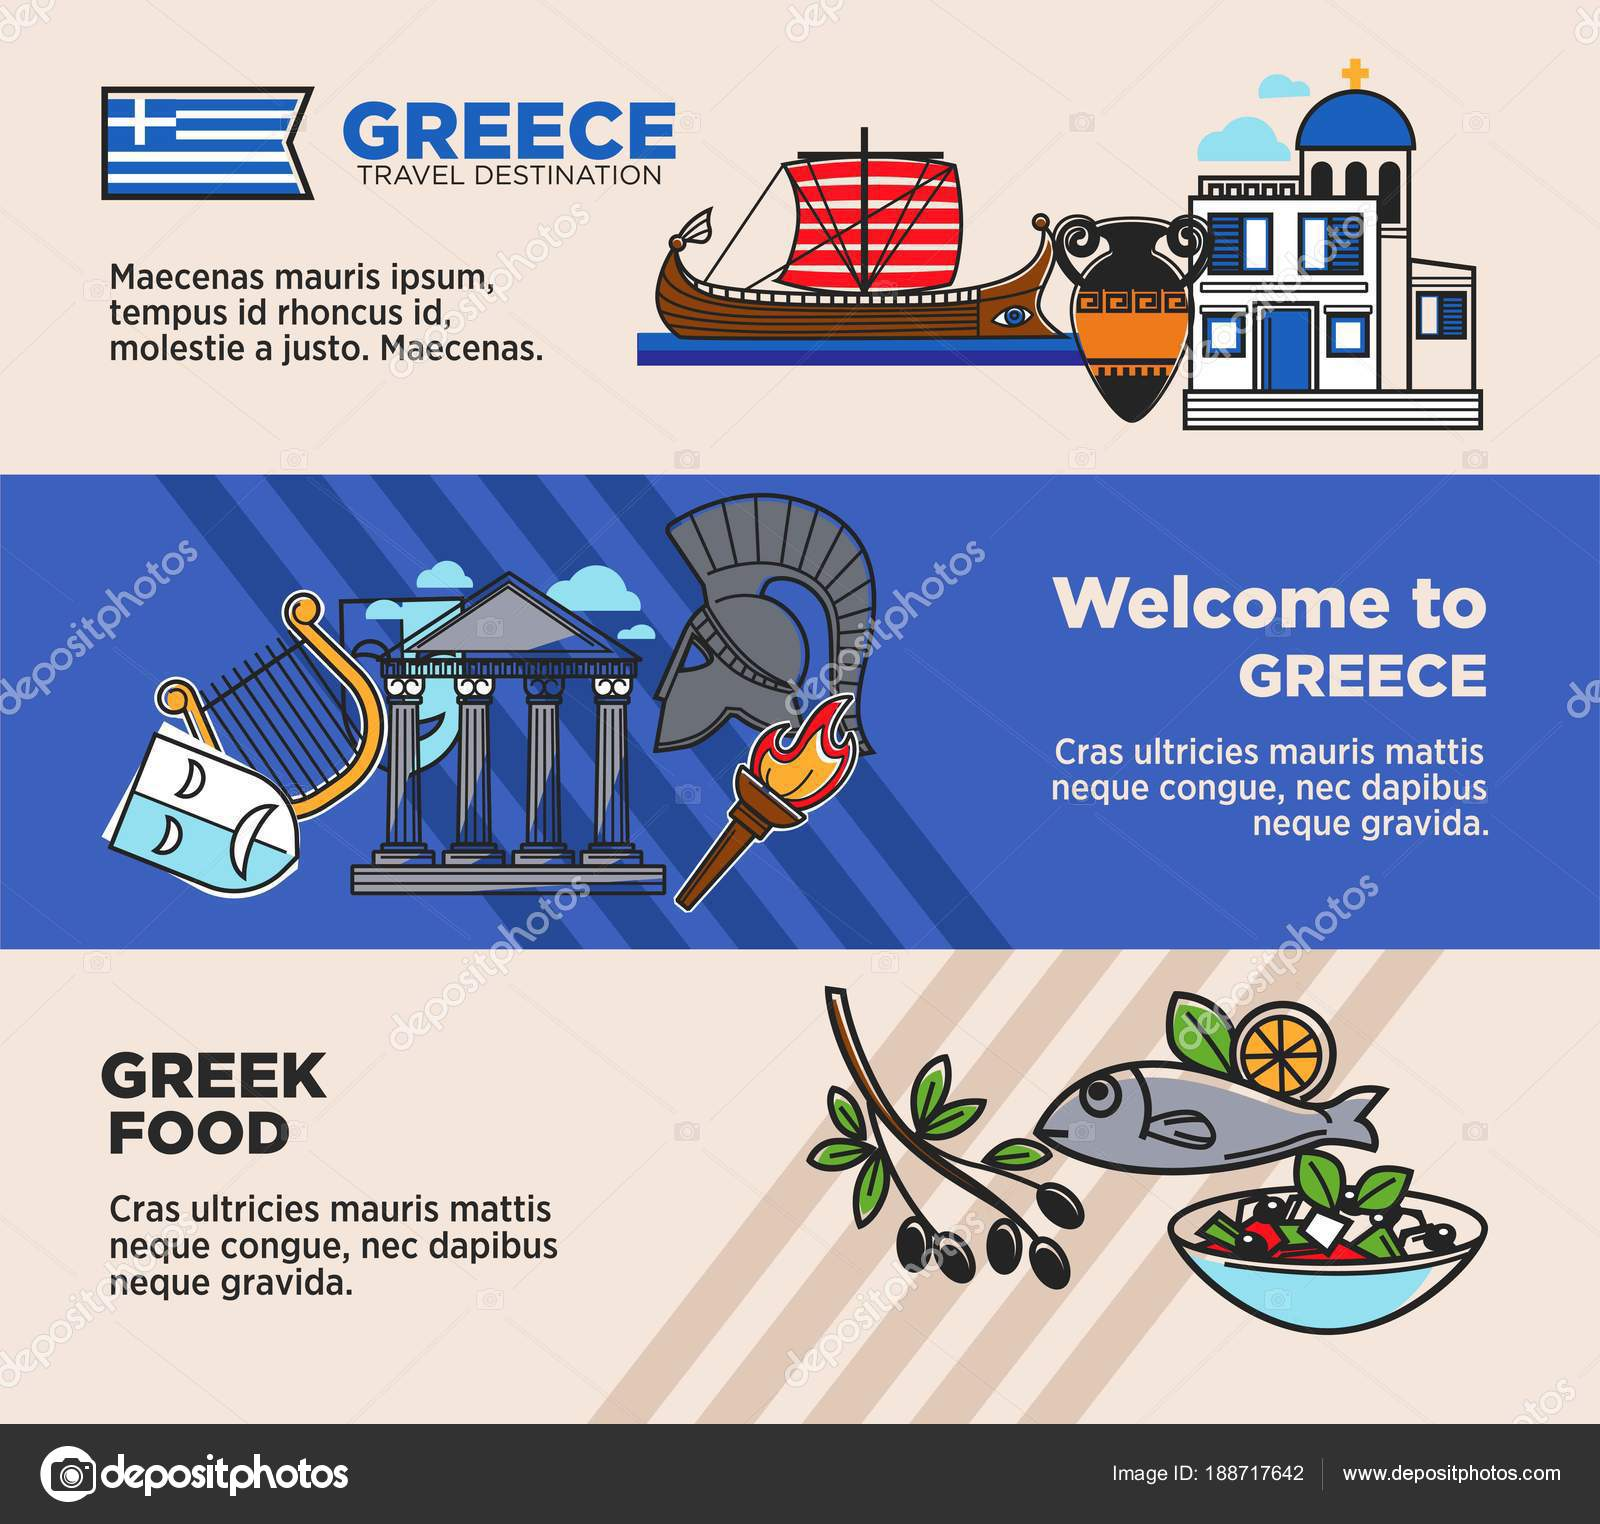 Welcome greece promotional travel agency banners set historical welcome greece promotional travel agency banners set historical national symbols stock vector ccuart Choice Image